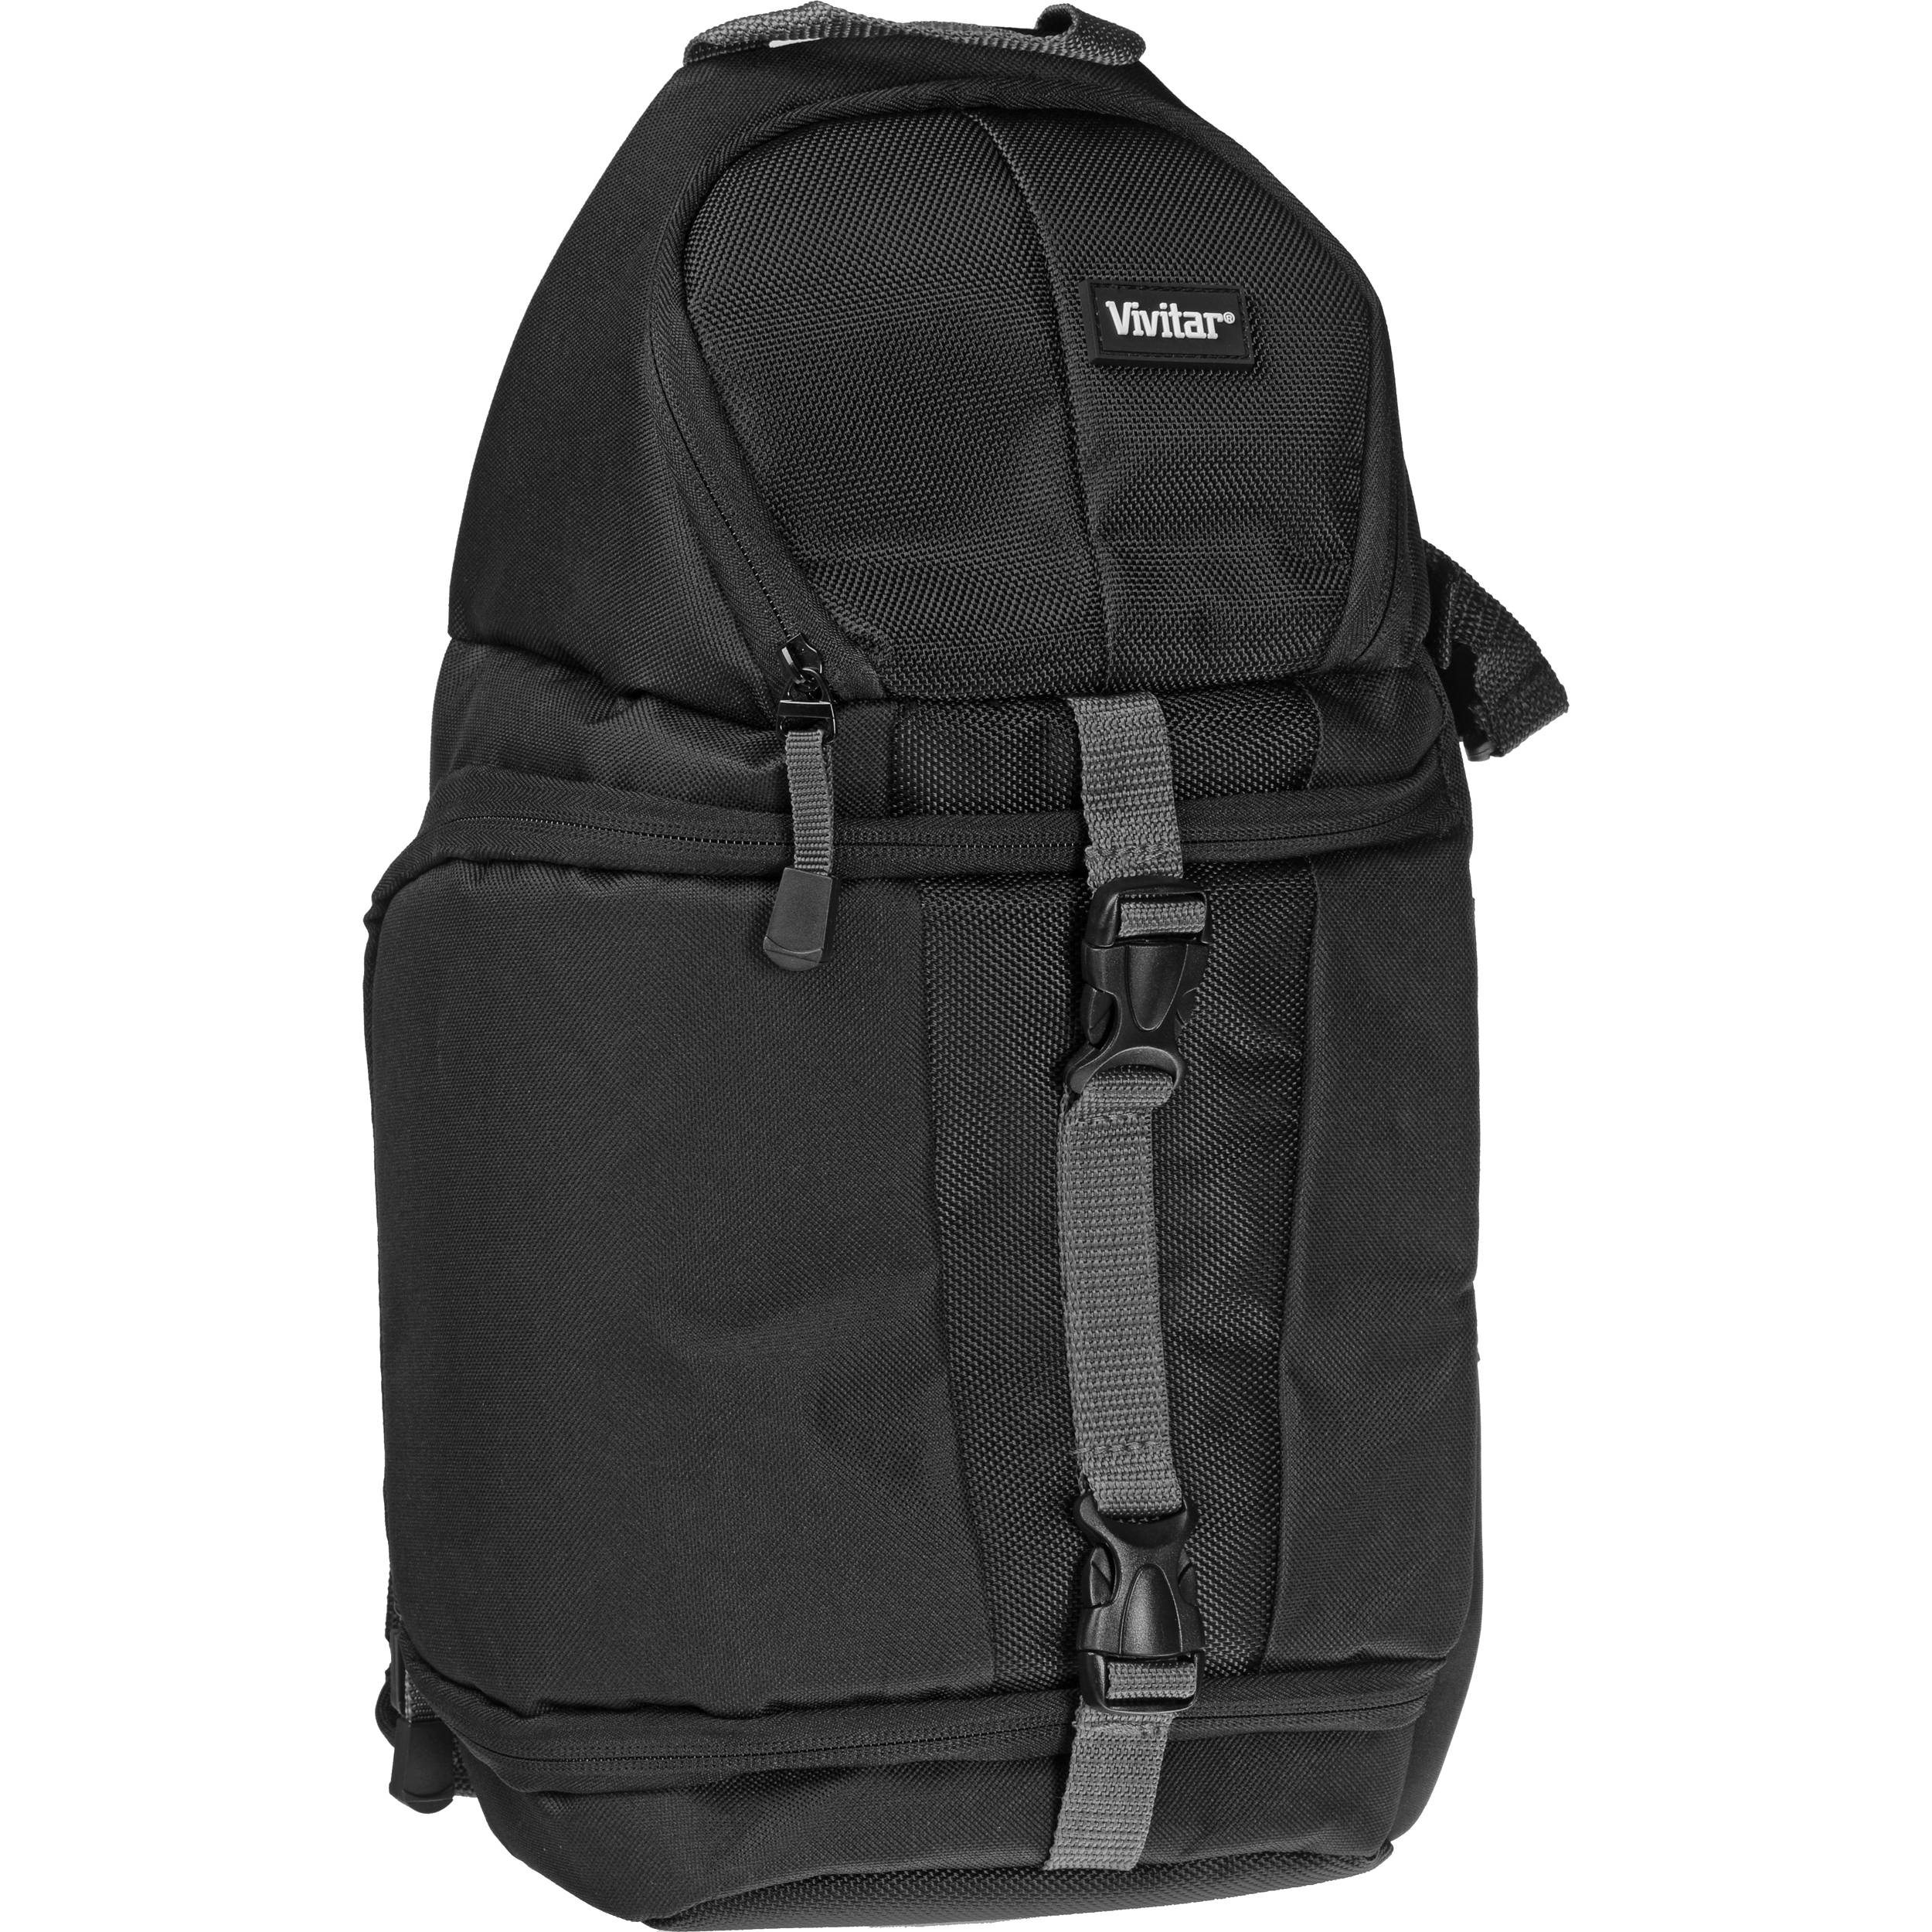 Vivitar Dks 15 Sling Backpack For Dslr System Black